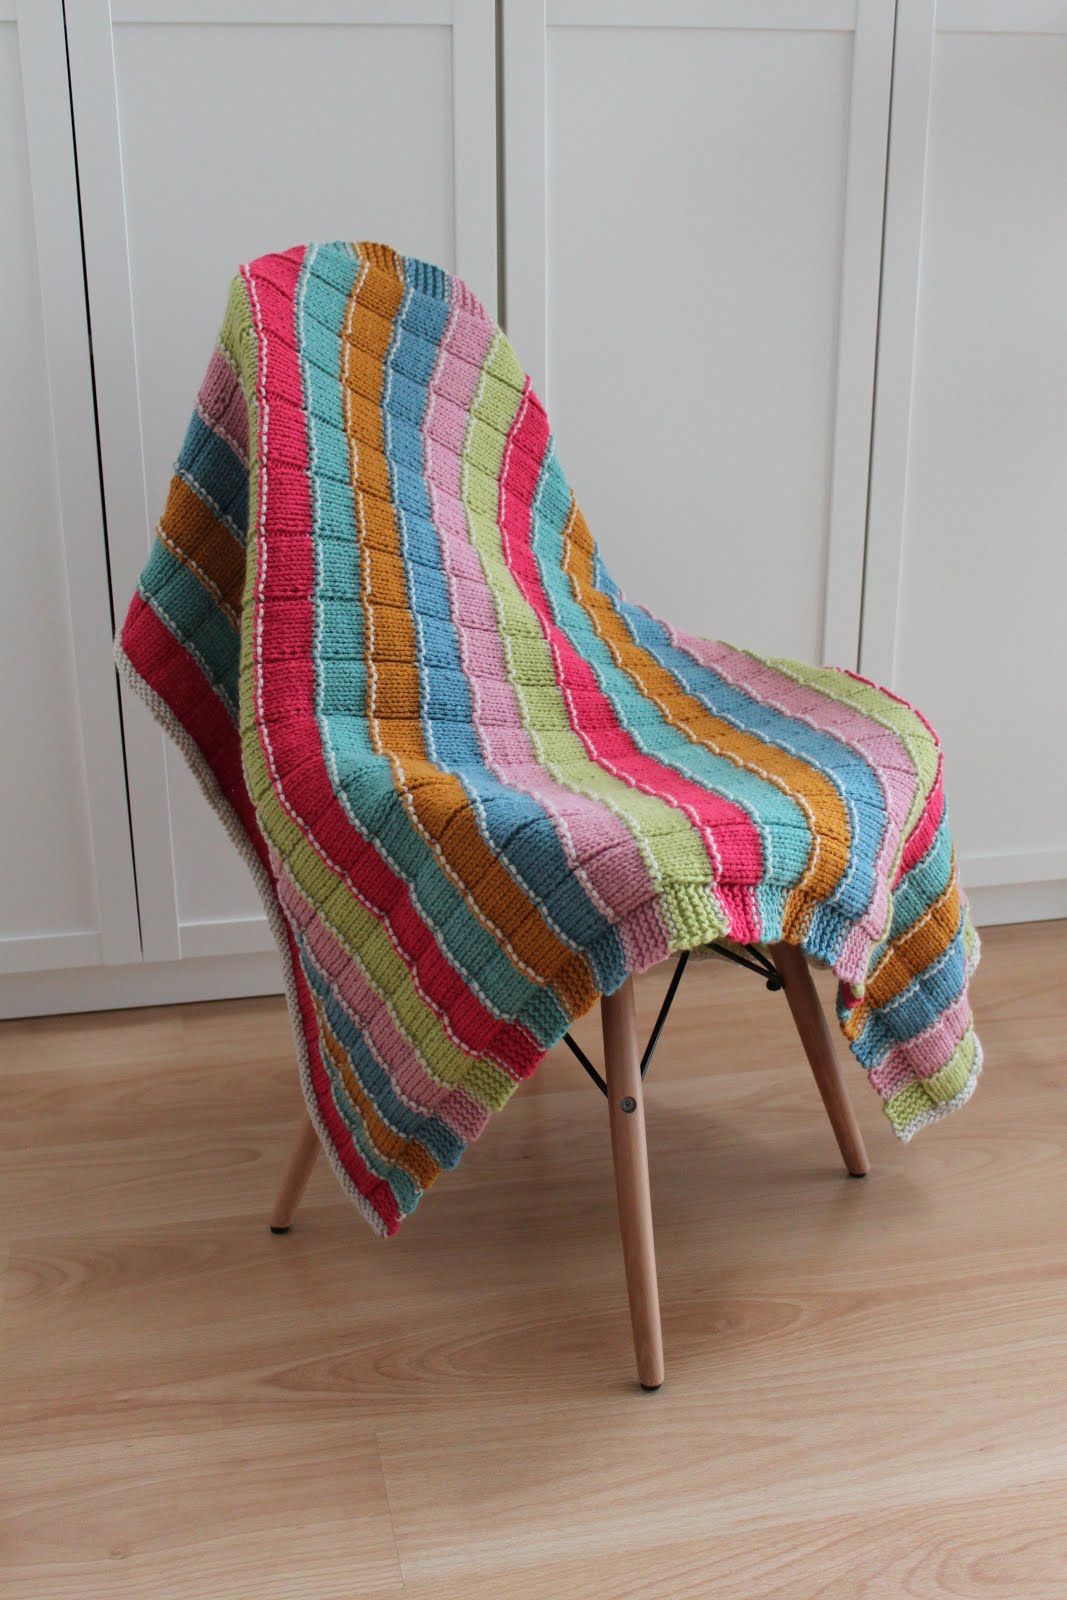 Special Stripy Blanket Yarn Packs